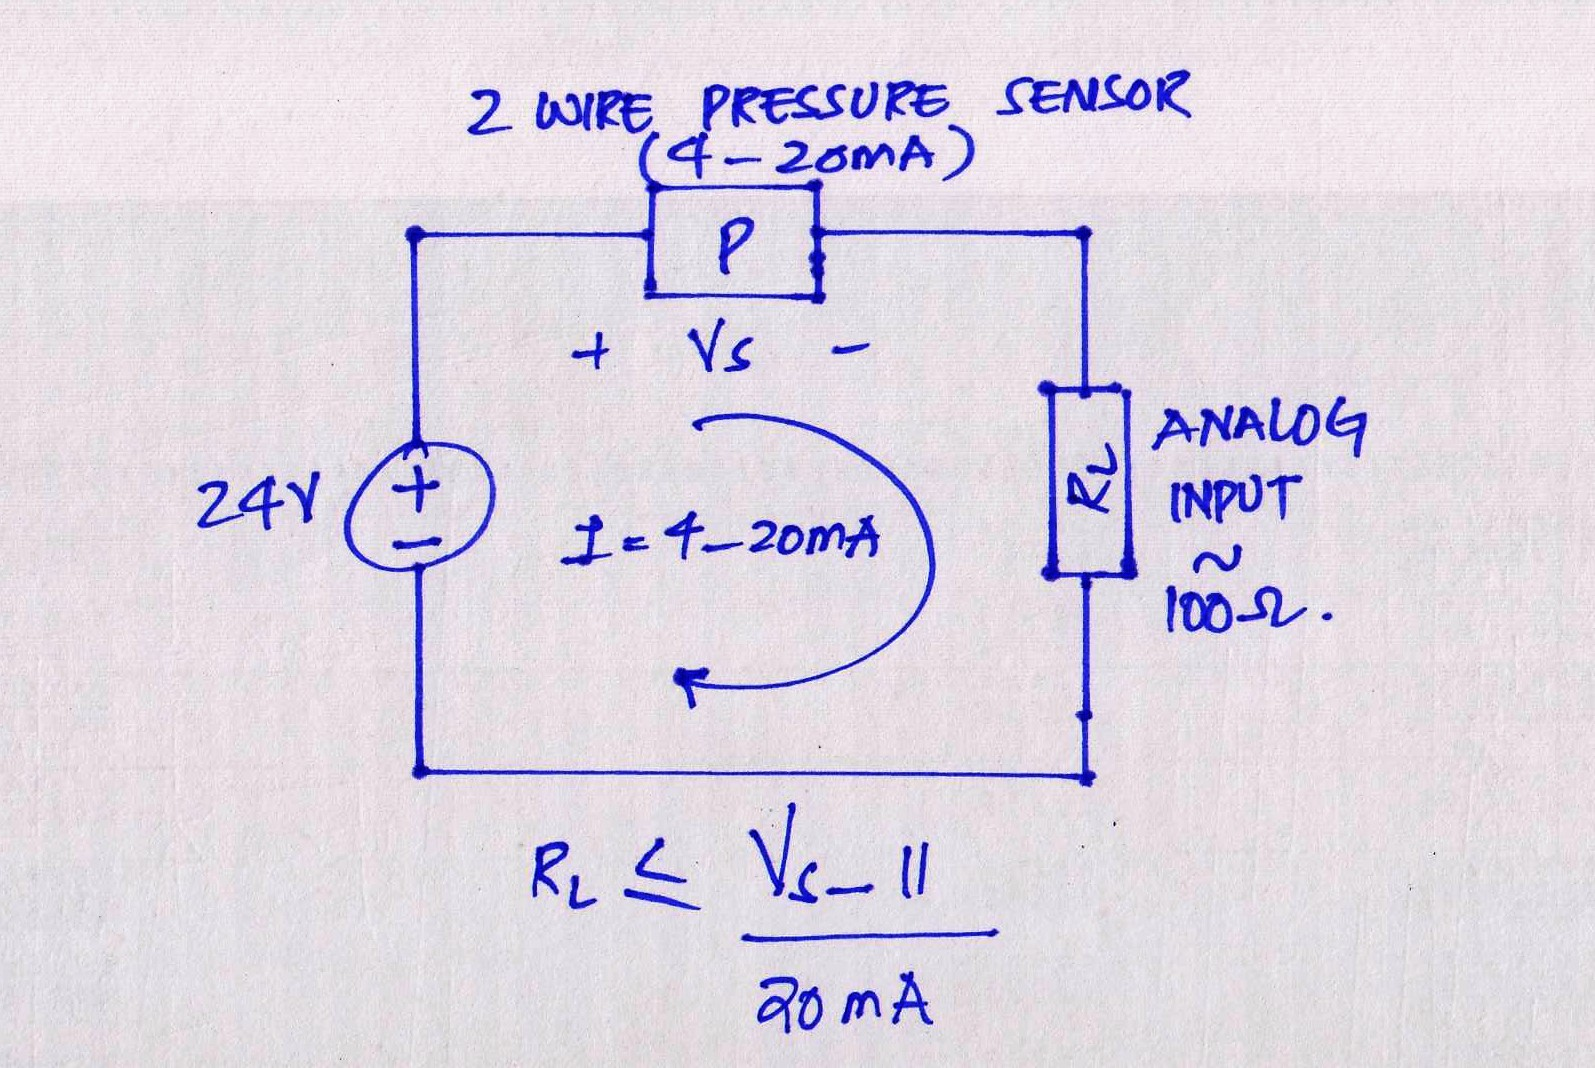 Current Loop Wiring Diagram Electrical Tester And Pressure Monitor For A 4 20ma 10 Bar Ground Isolator Circuit